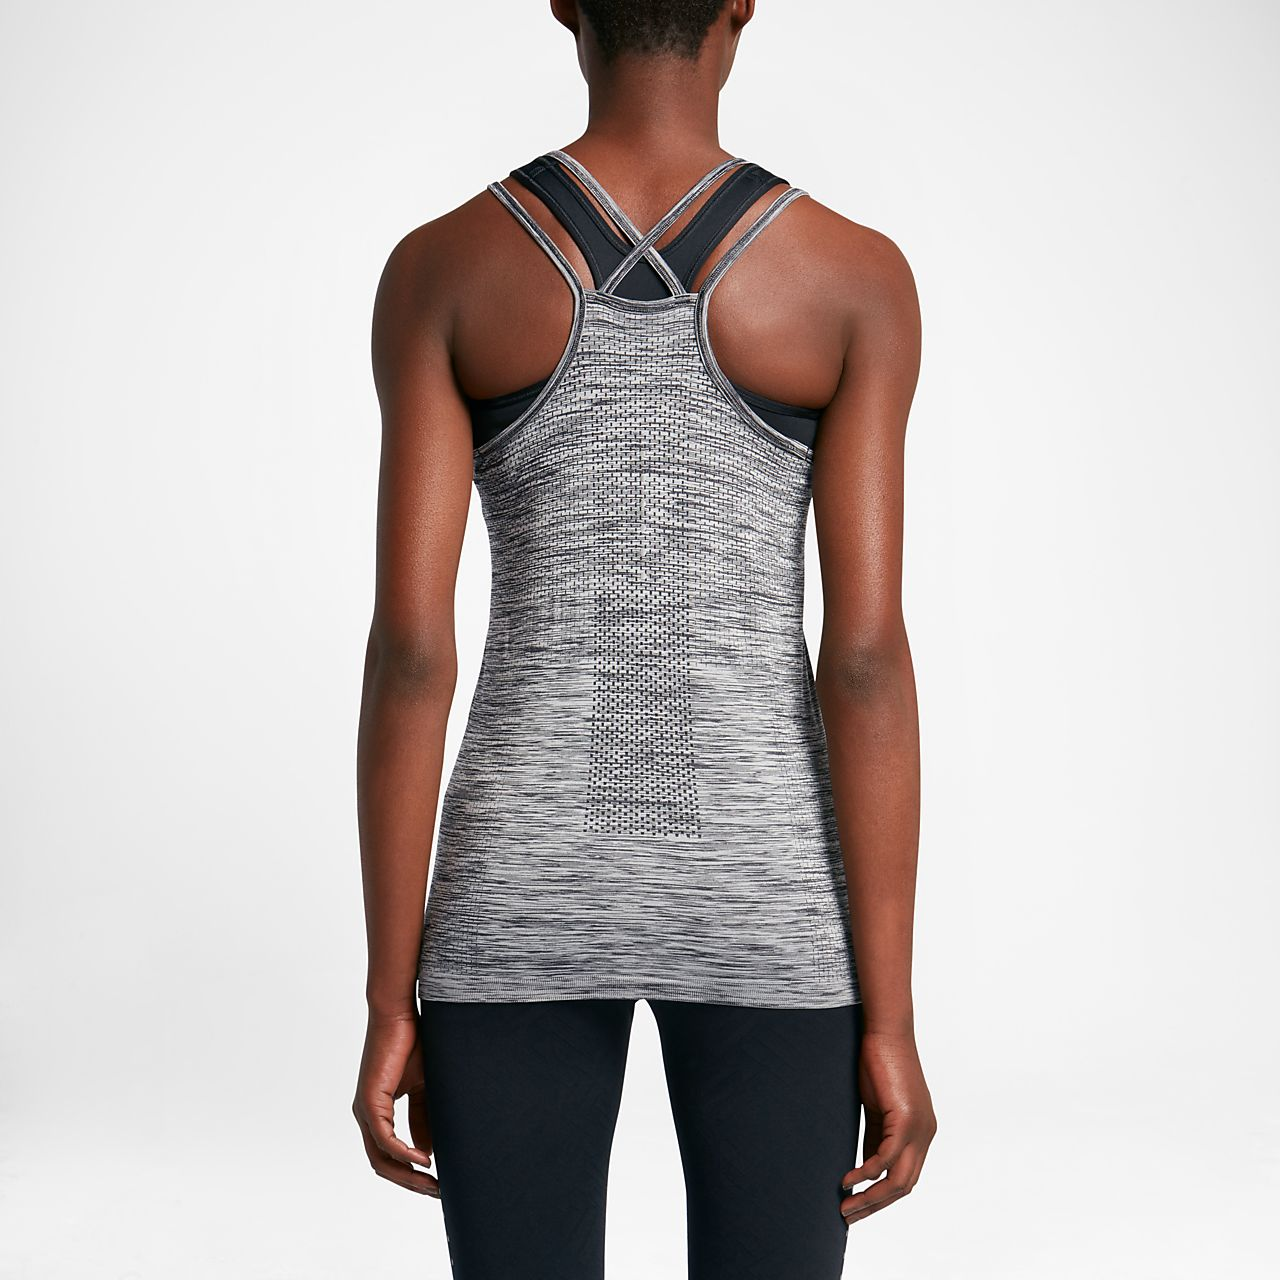 c6054e7dd89 Nike Dri-FIT Knit Women s Running Tank. Nike.com GB